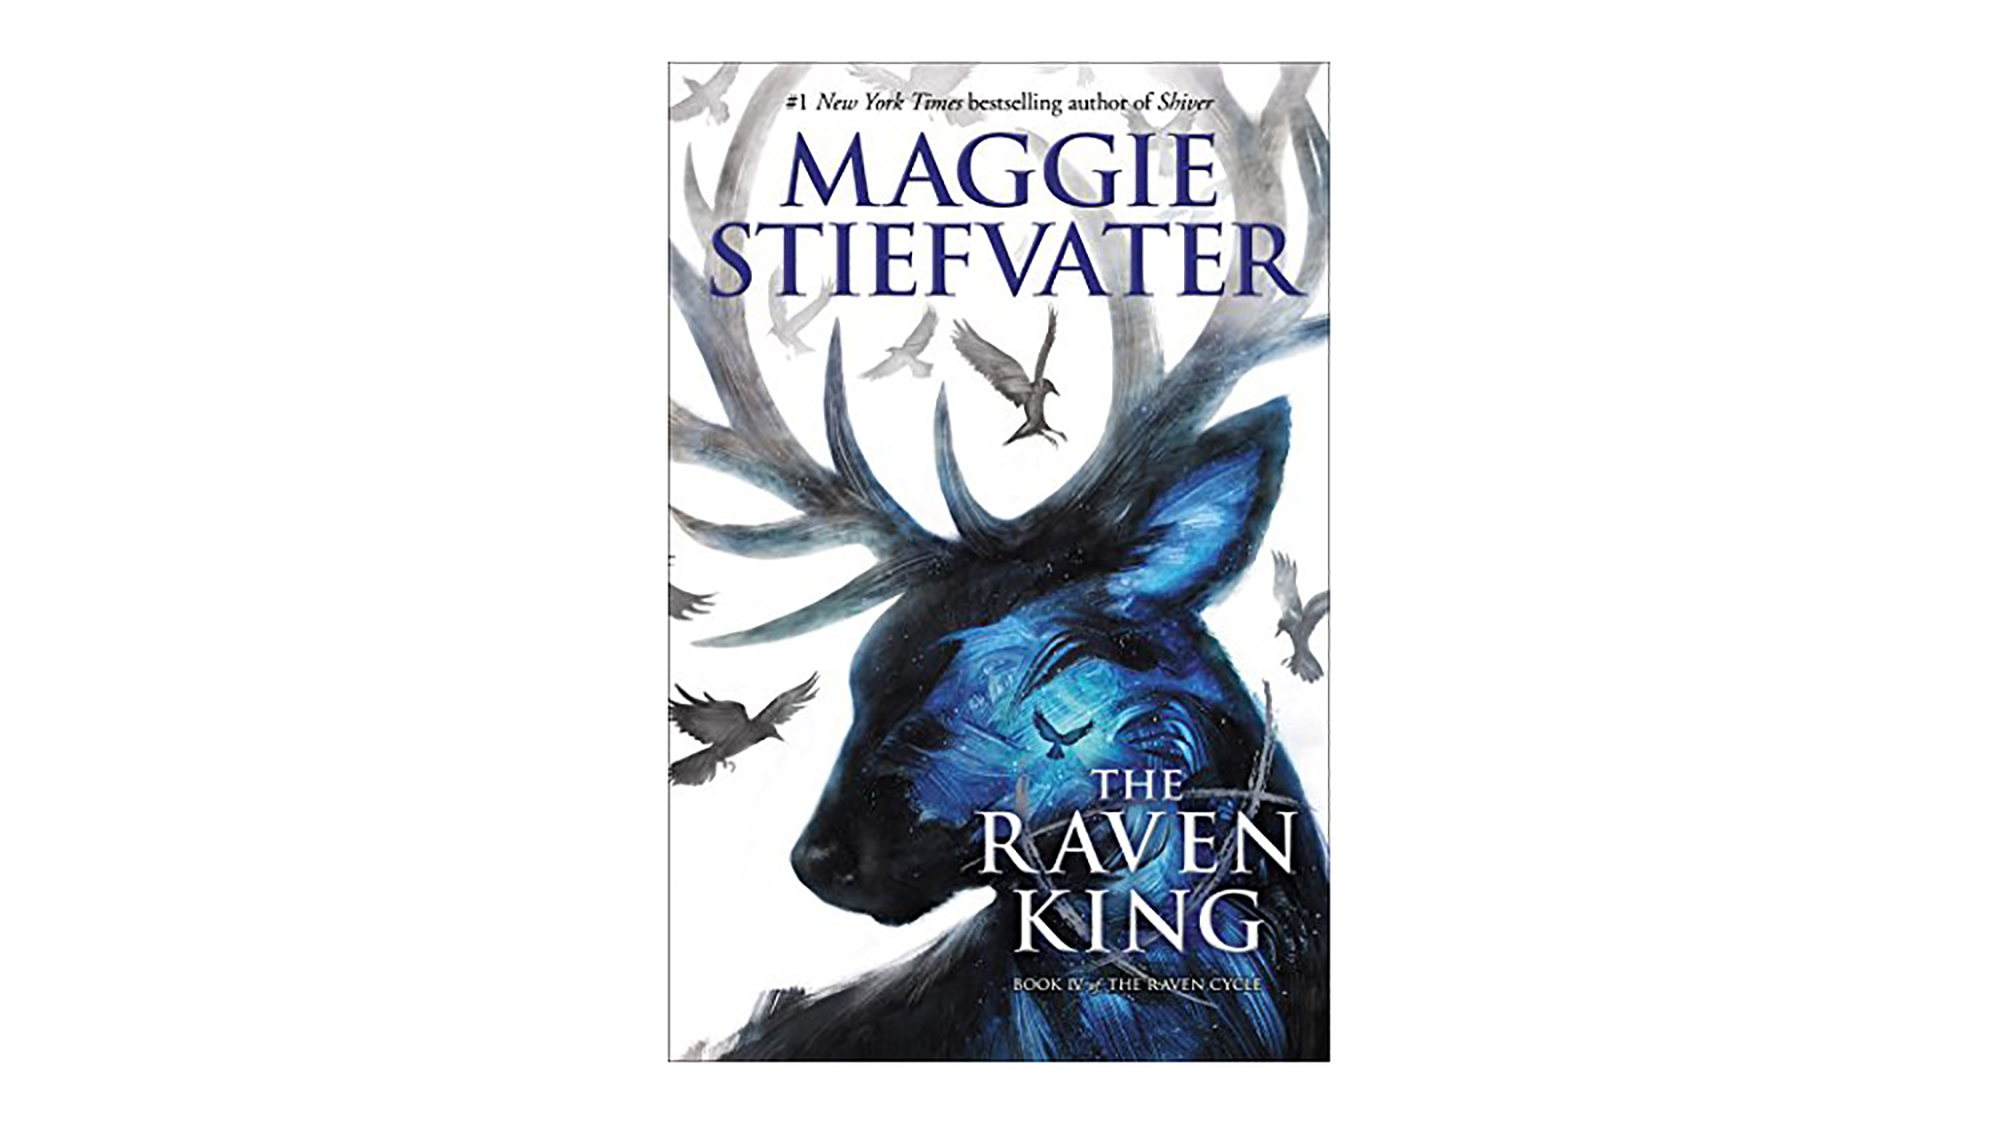 The Raven King (The Raven Cycle Book 4) by Maggie Stiefvater